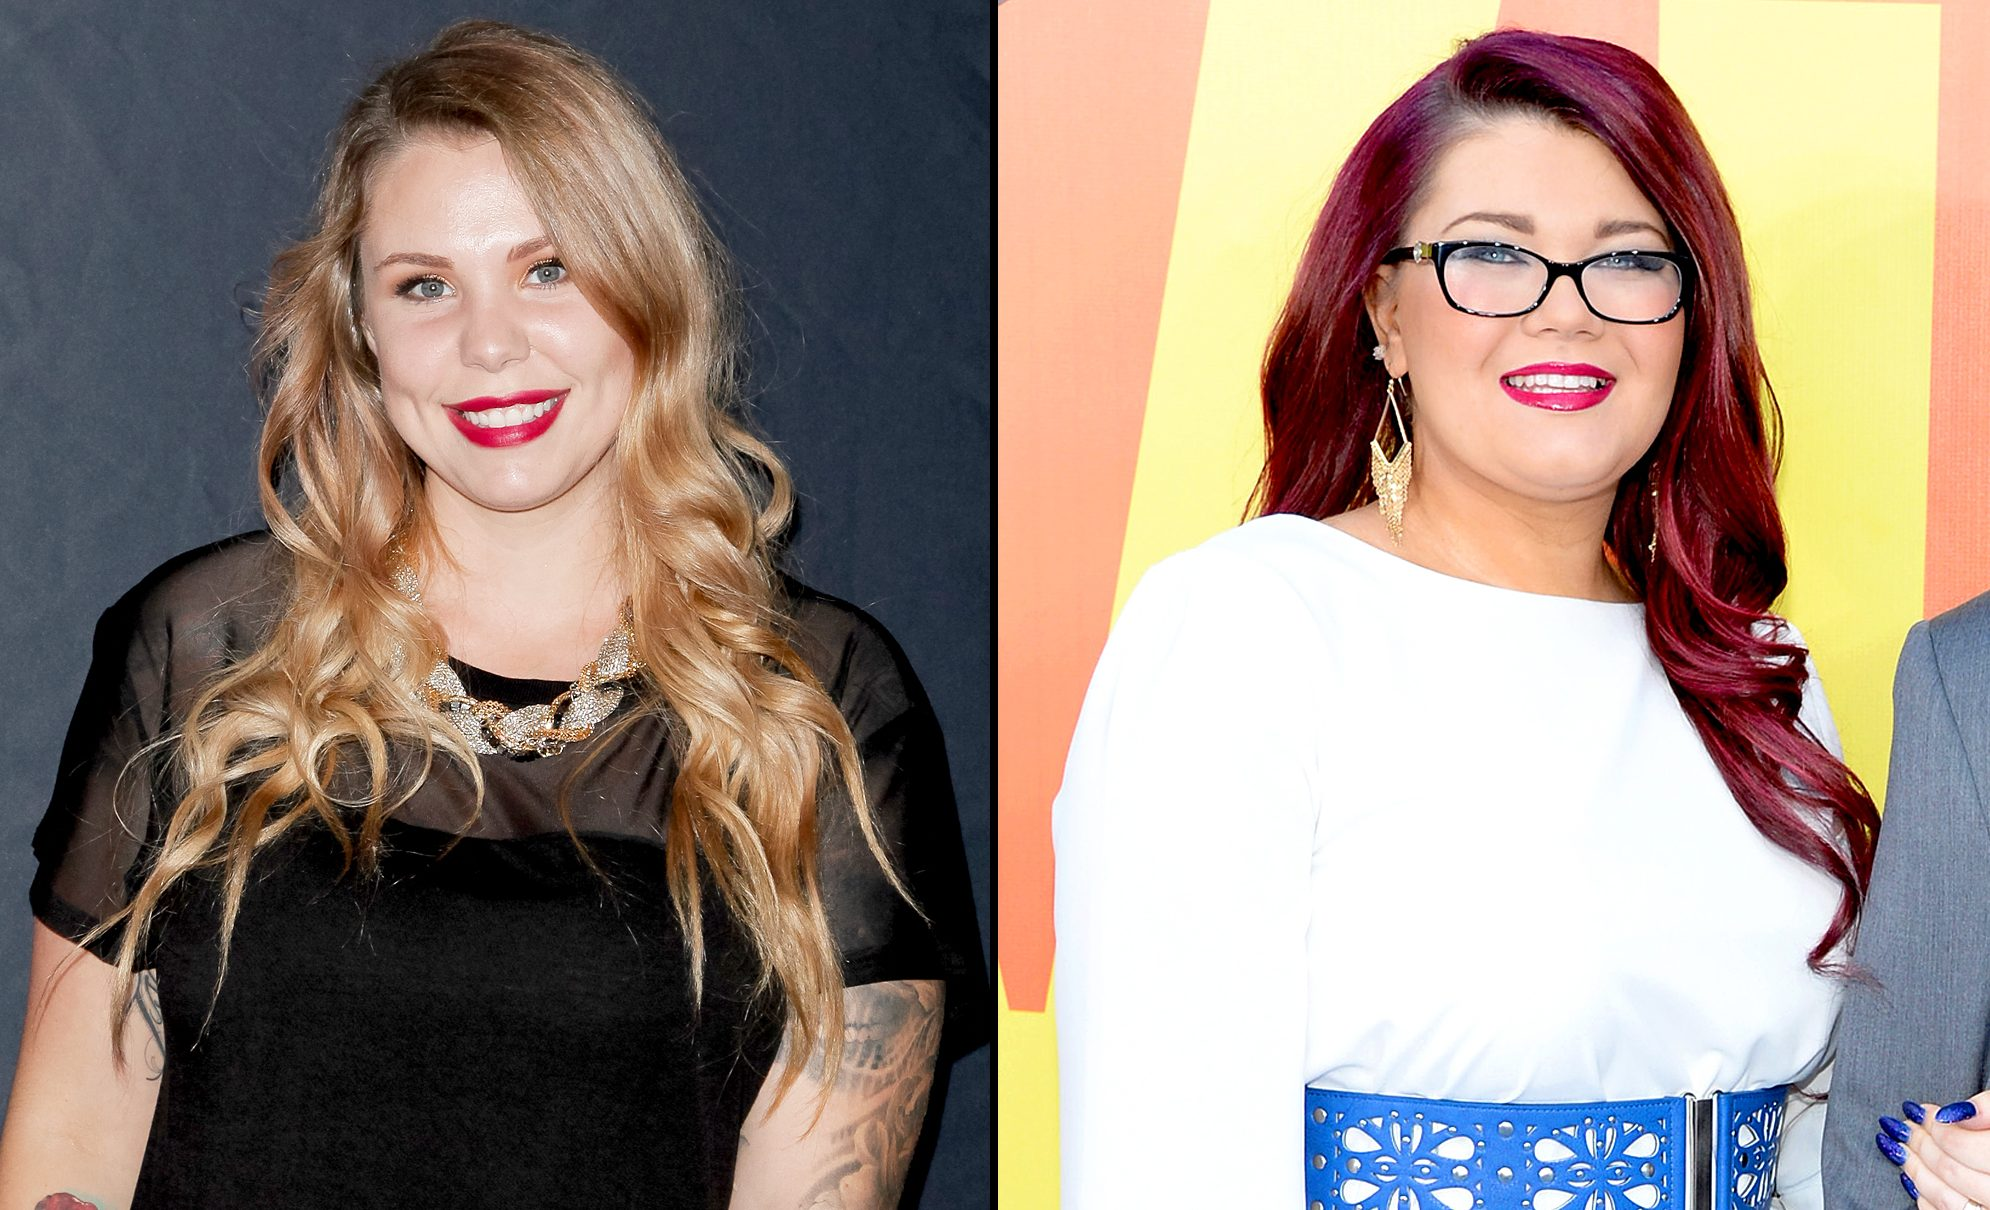 """jenelle-evans-drags-kailyn-lowry-and-amber-portwood-says-they-talk-about-her-for-attention"""